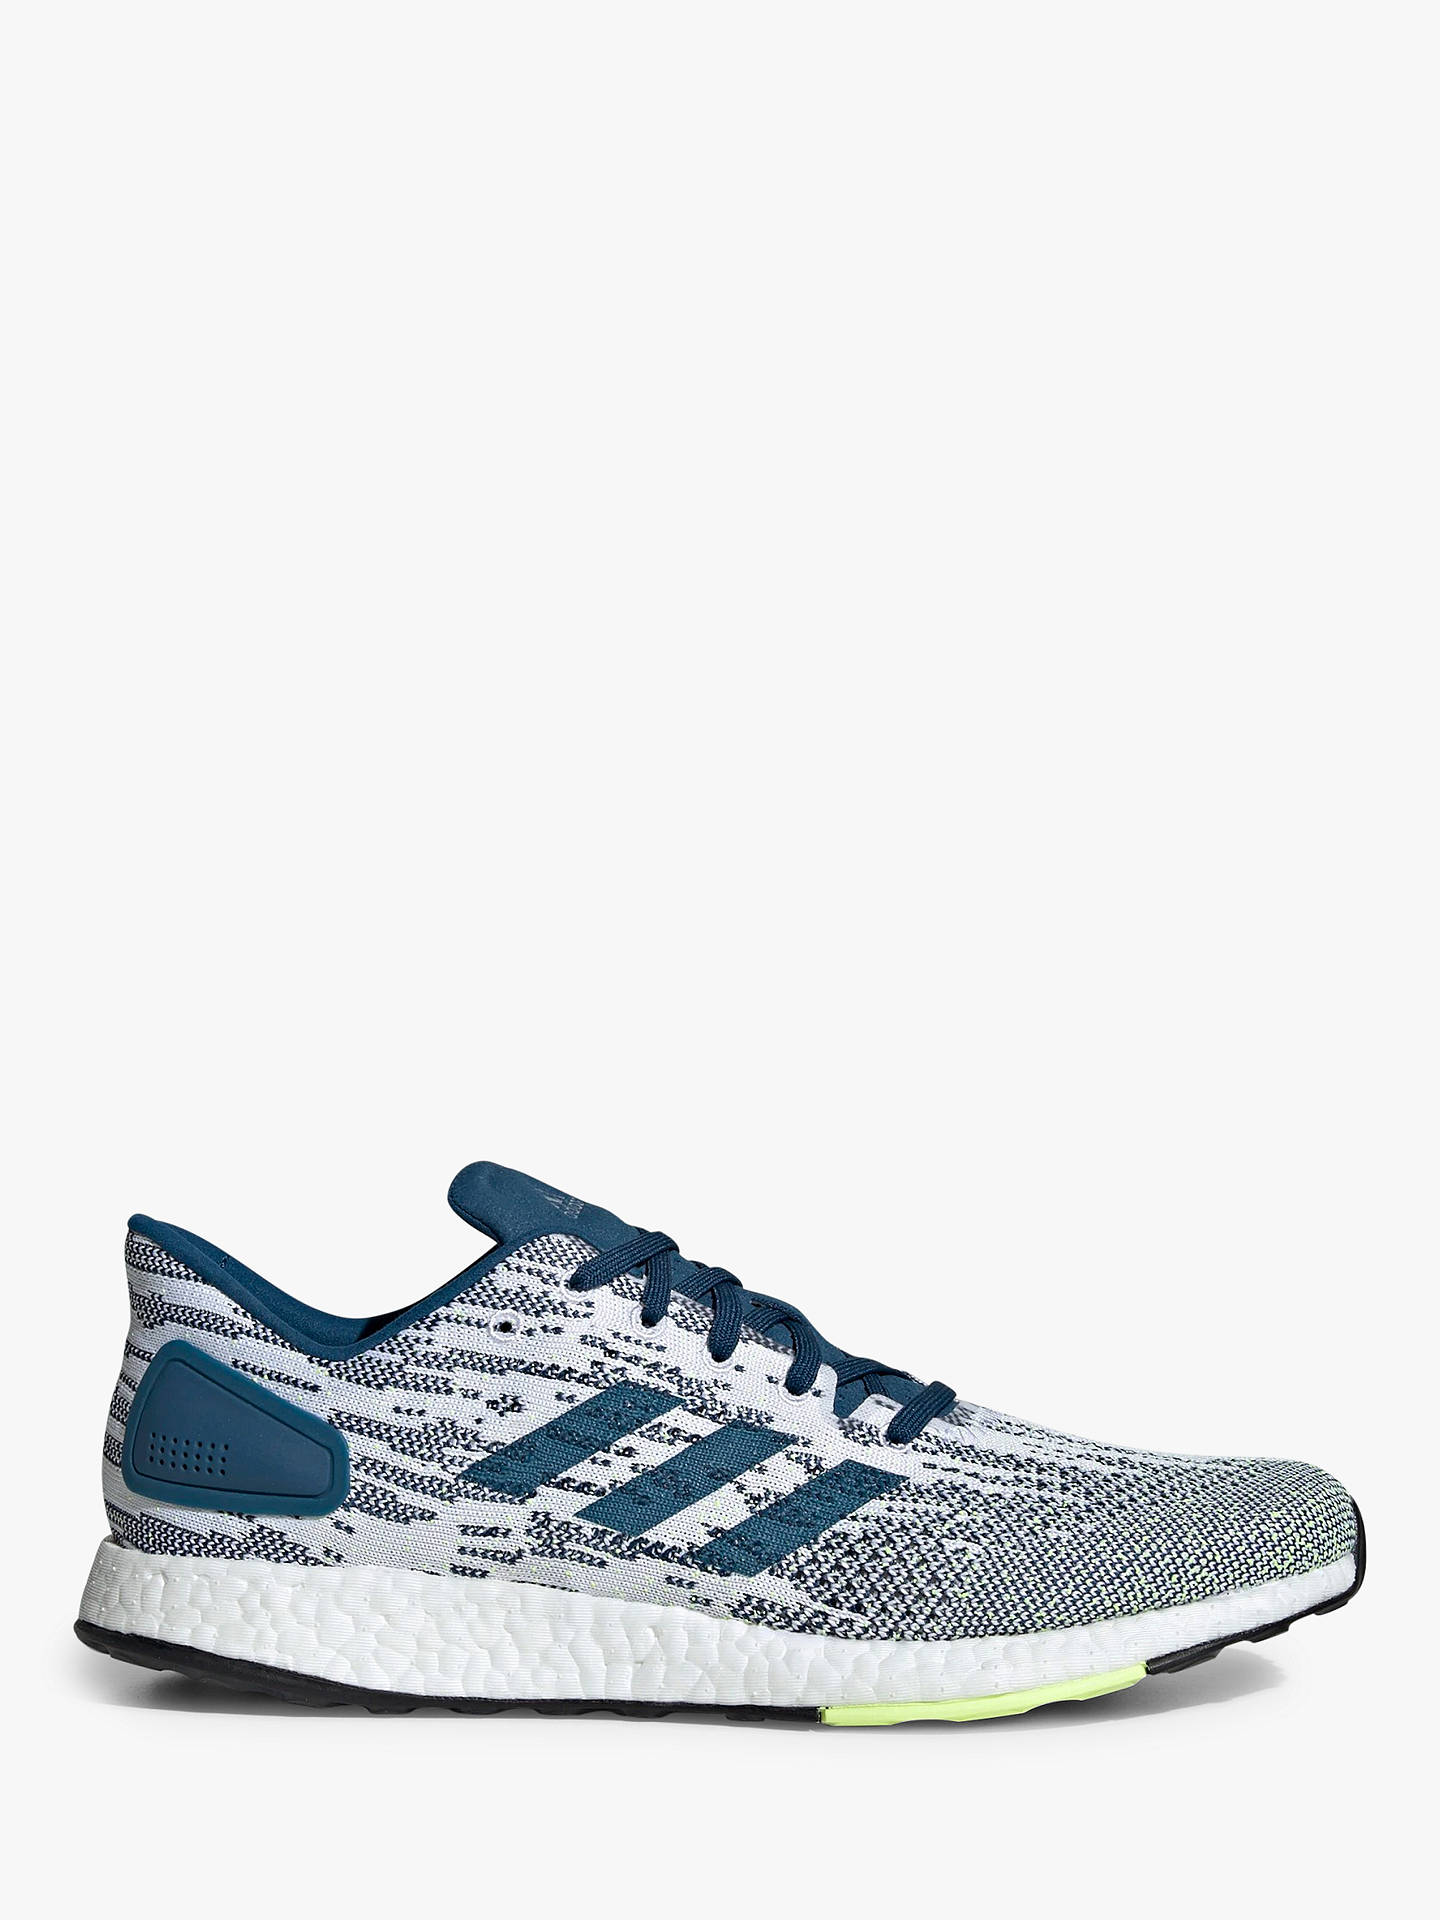 63aaee0547343 Buy adidas PureBoost DPR Men s Running Shoes